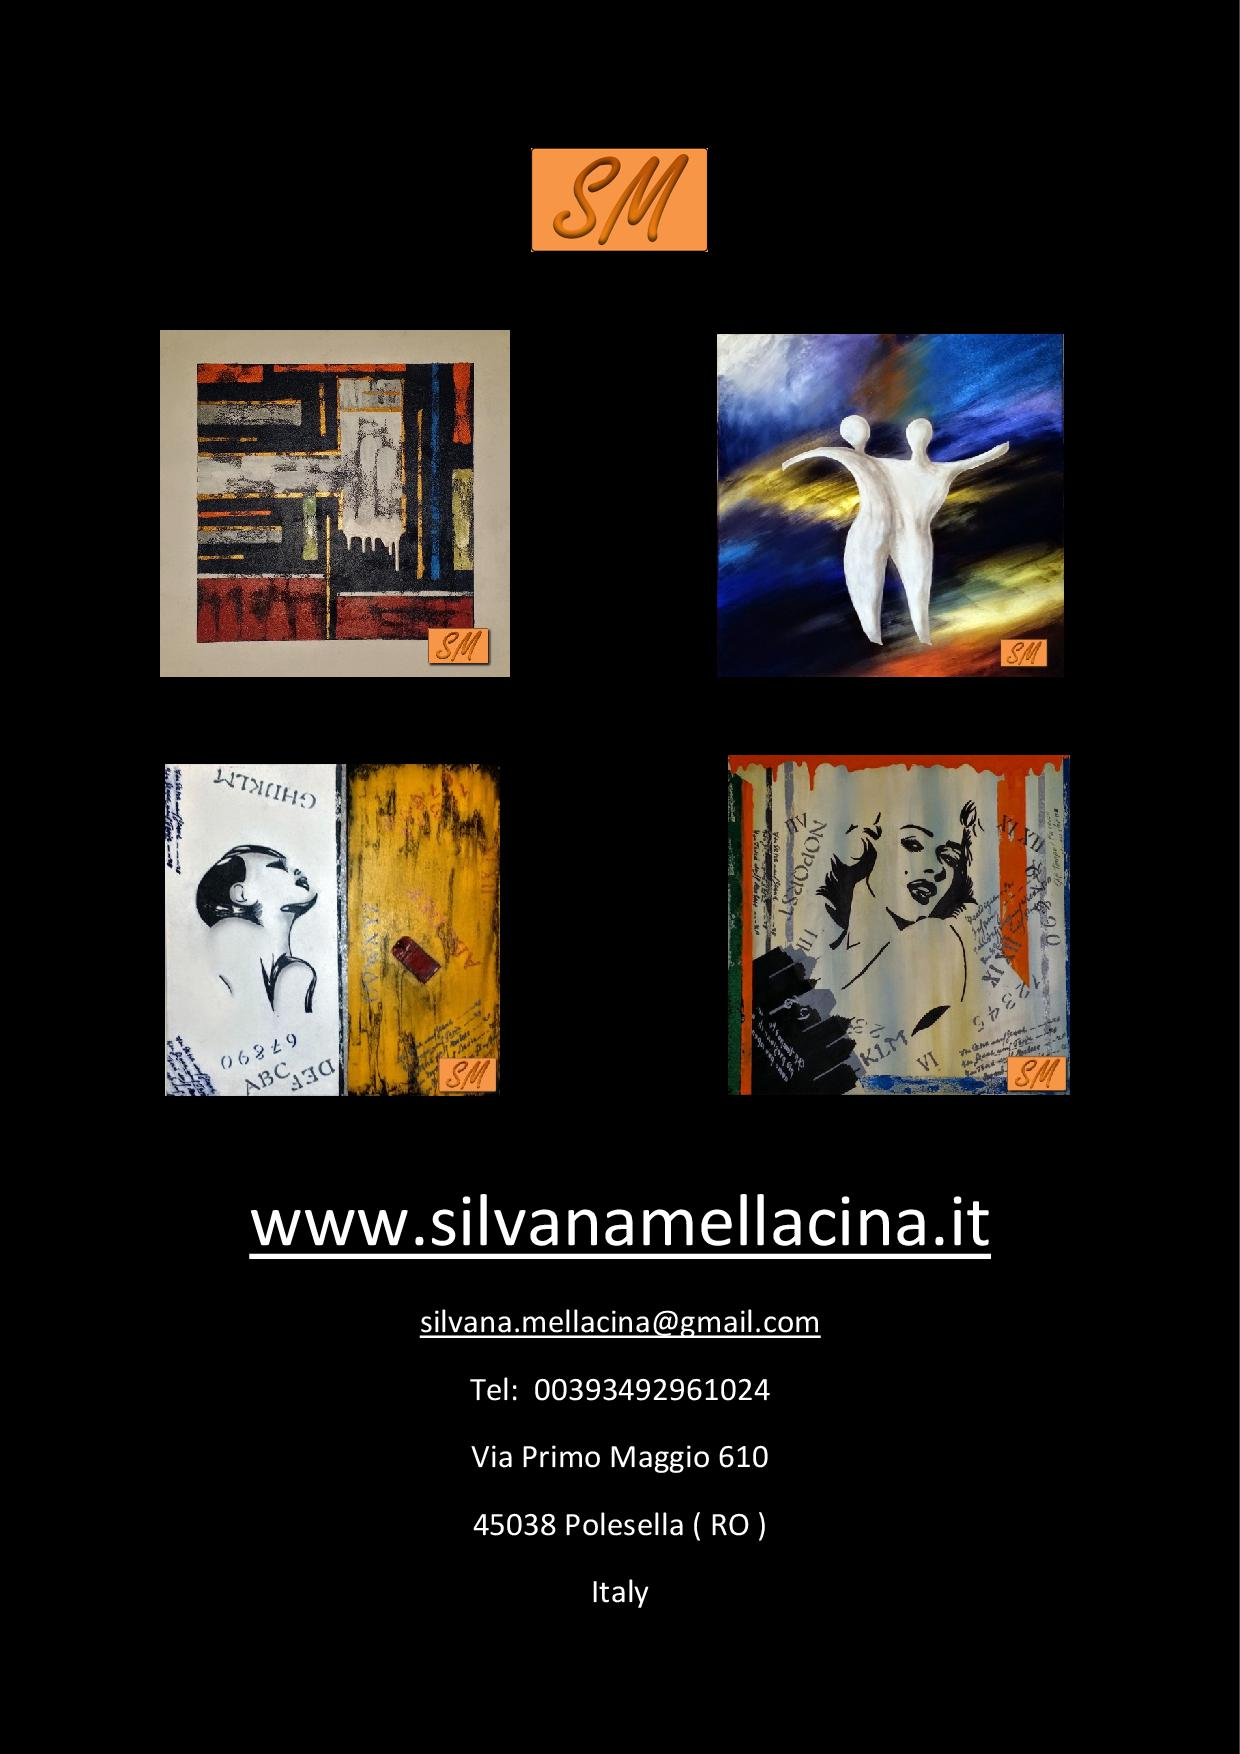 www.silvanamellacina.it-...quadri, fashion e altro...